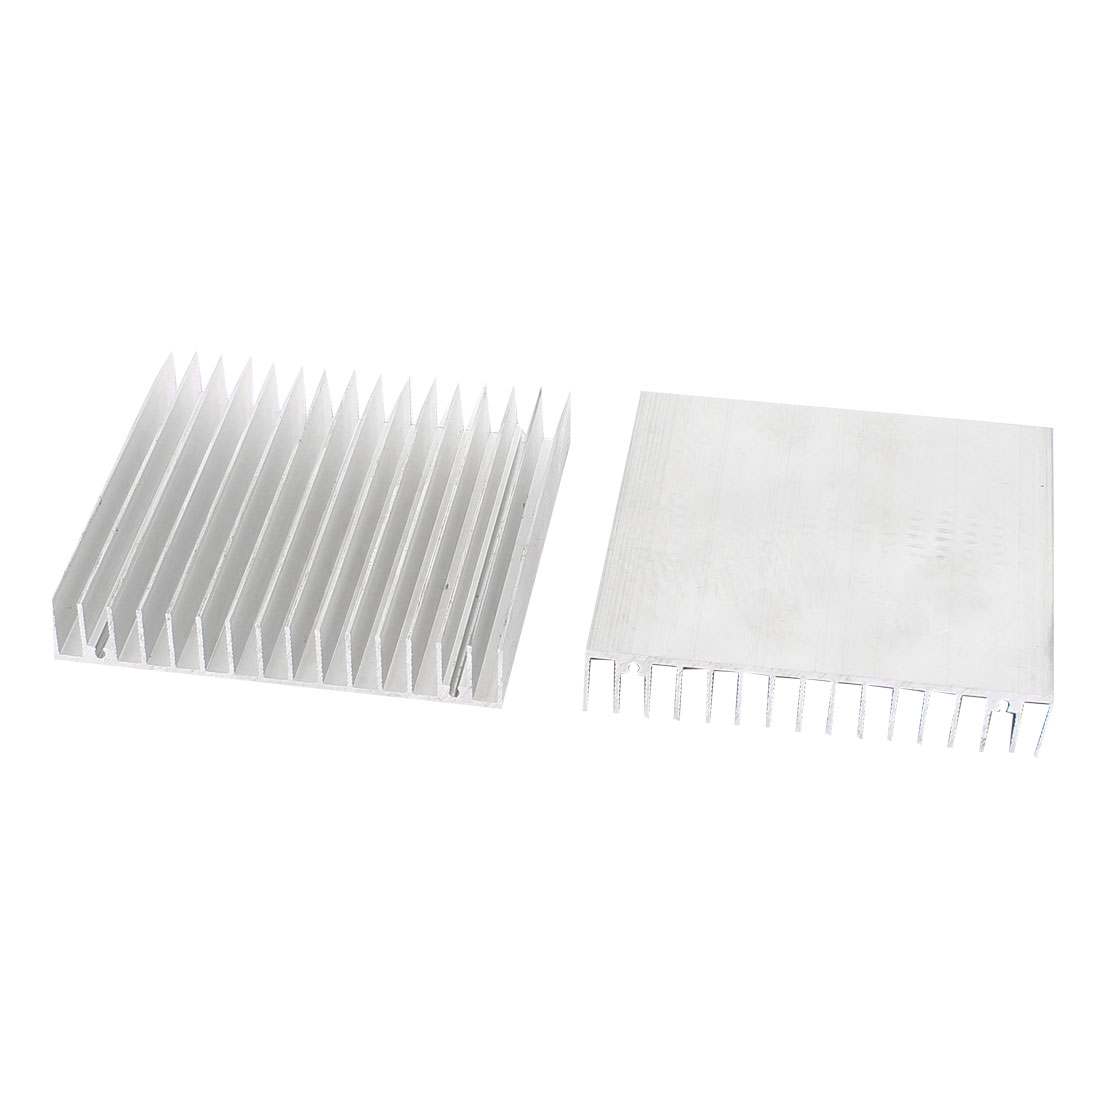 2Pcs Silver Tone Square Aluminium Radiator Heatsink Heat Sink 100 x 100 x 18mm